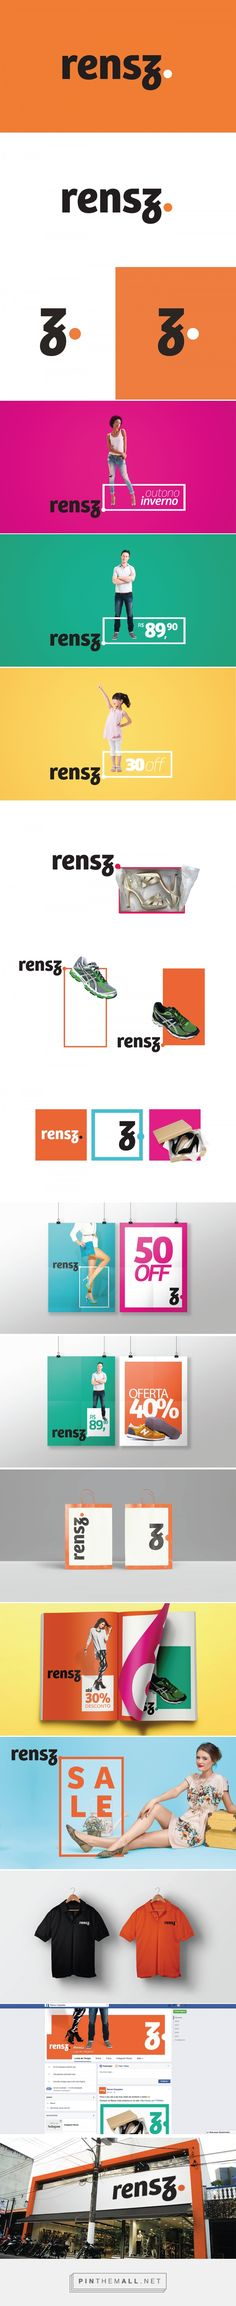 RENSZ on Behance... - a grouped images picture - Pin Them All